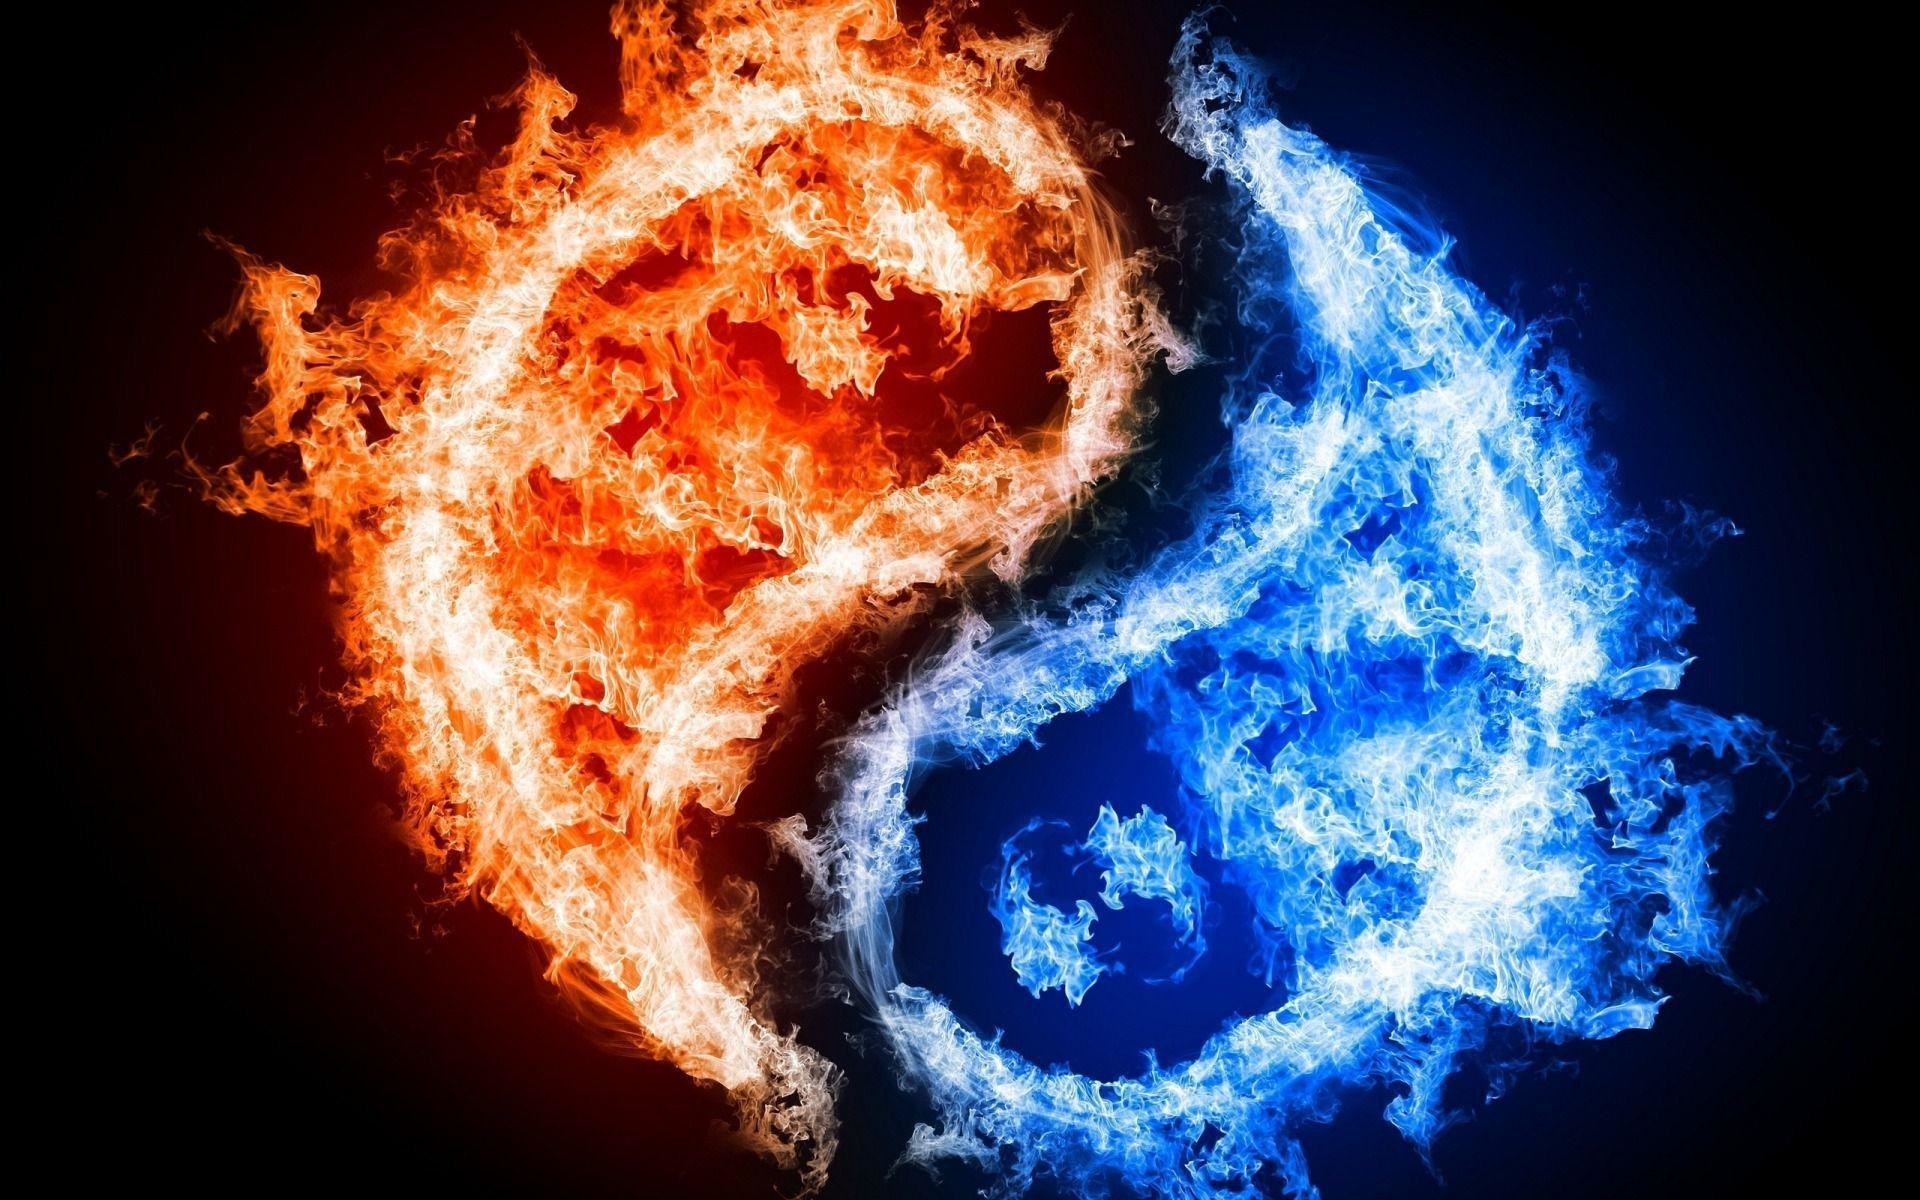 1920x1200 - Red and Blue Fire 6